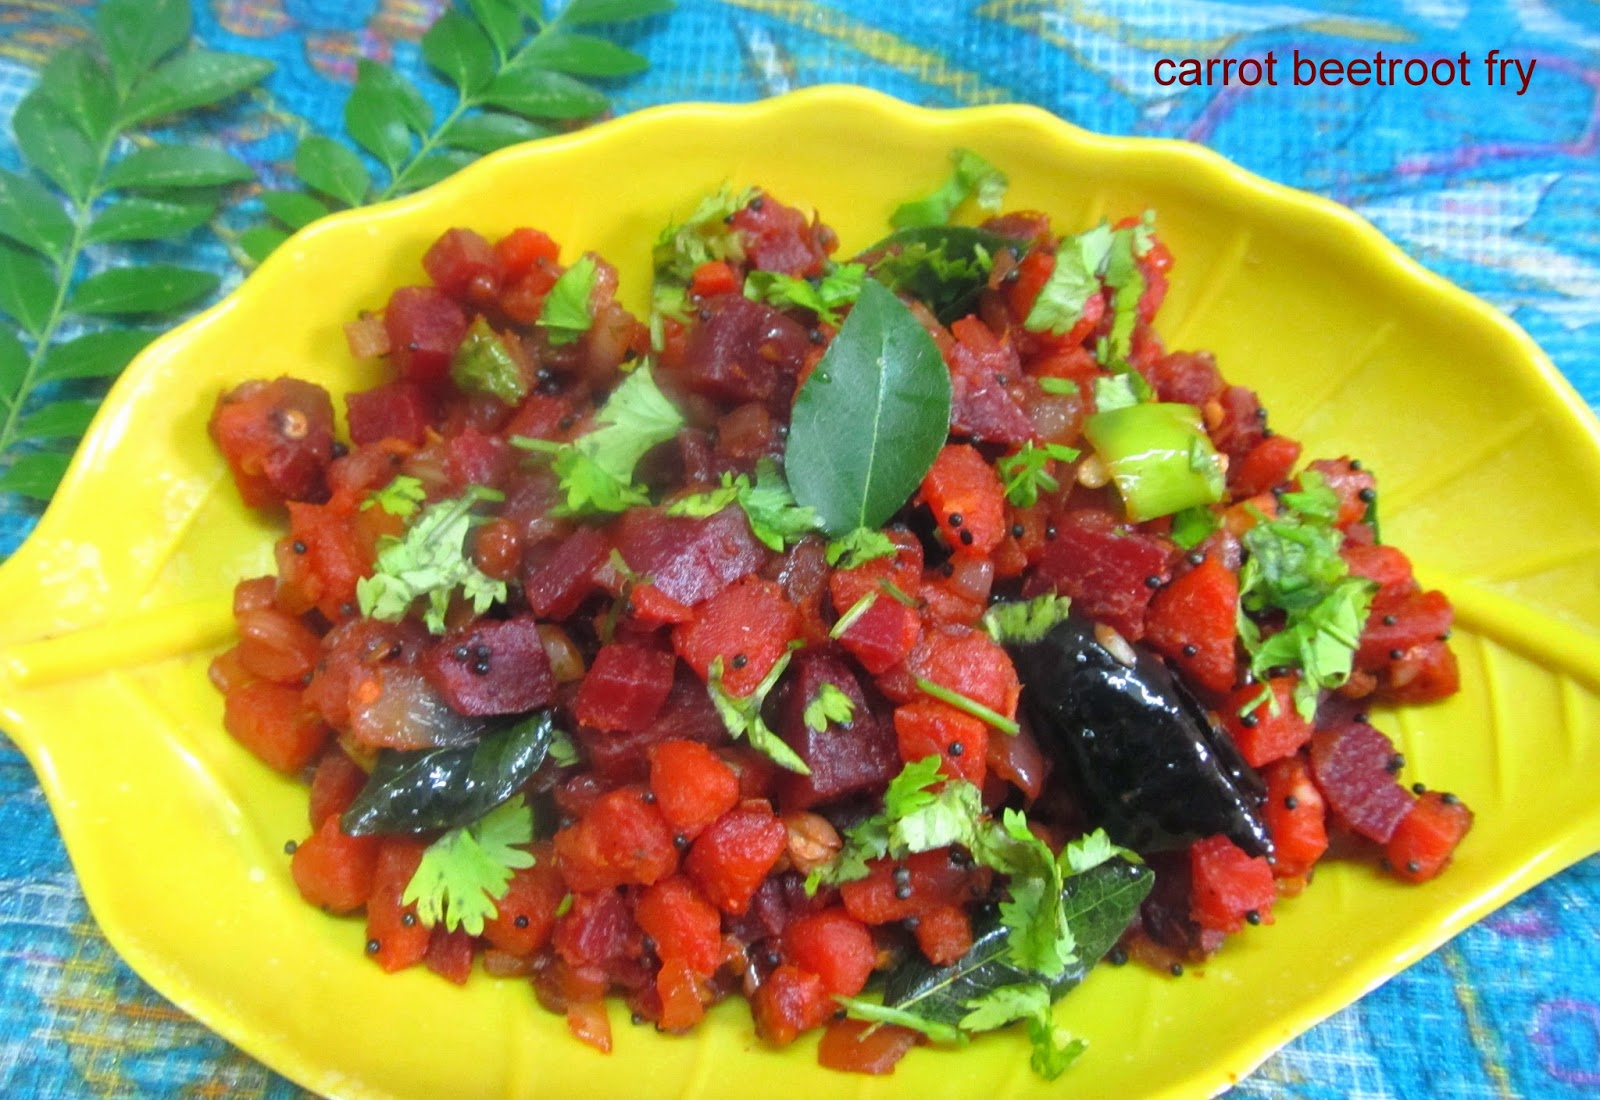 carrot beetroot fry